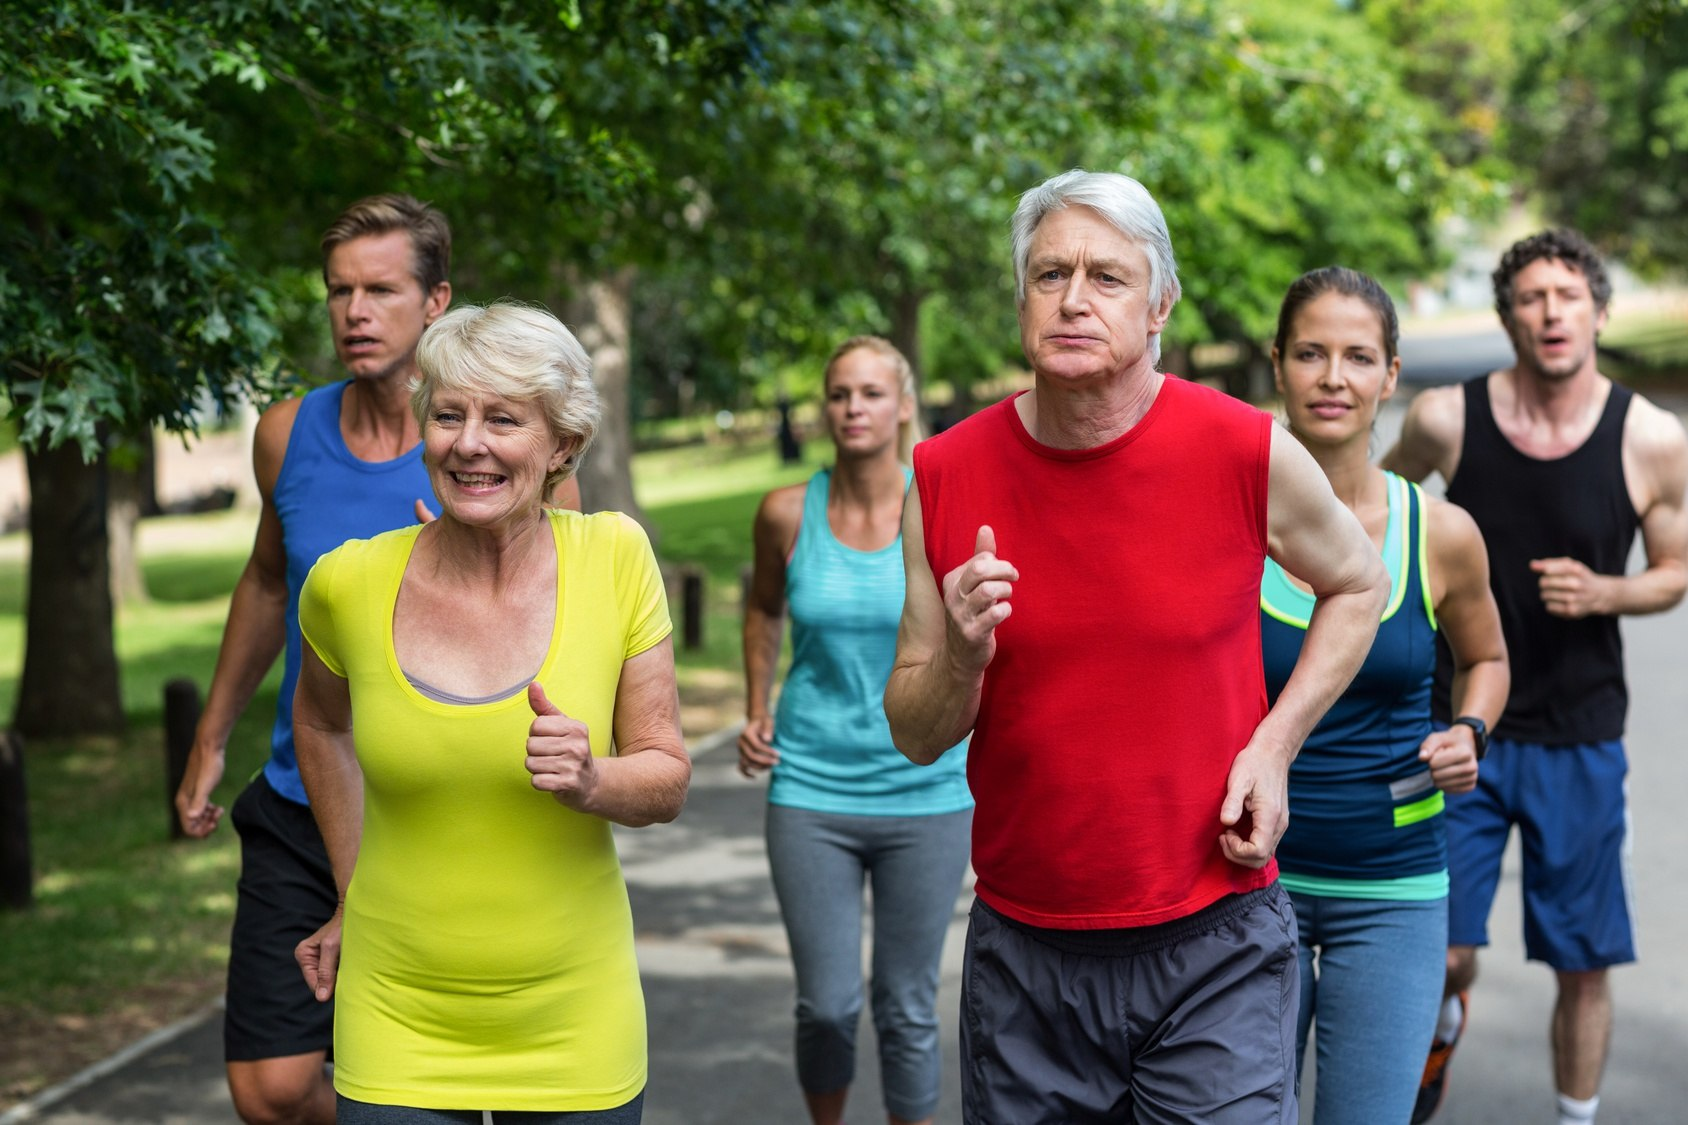 Do you want to improve your quality of life without pain? Your Best Pain Management Orthopedic / Geriatric / Sport Rehabilitation Therapists (PT) are here to help you in Columbia, Howard County, MD!